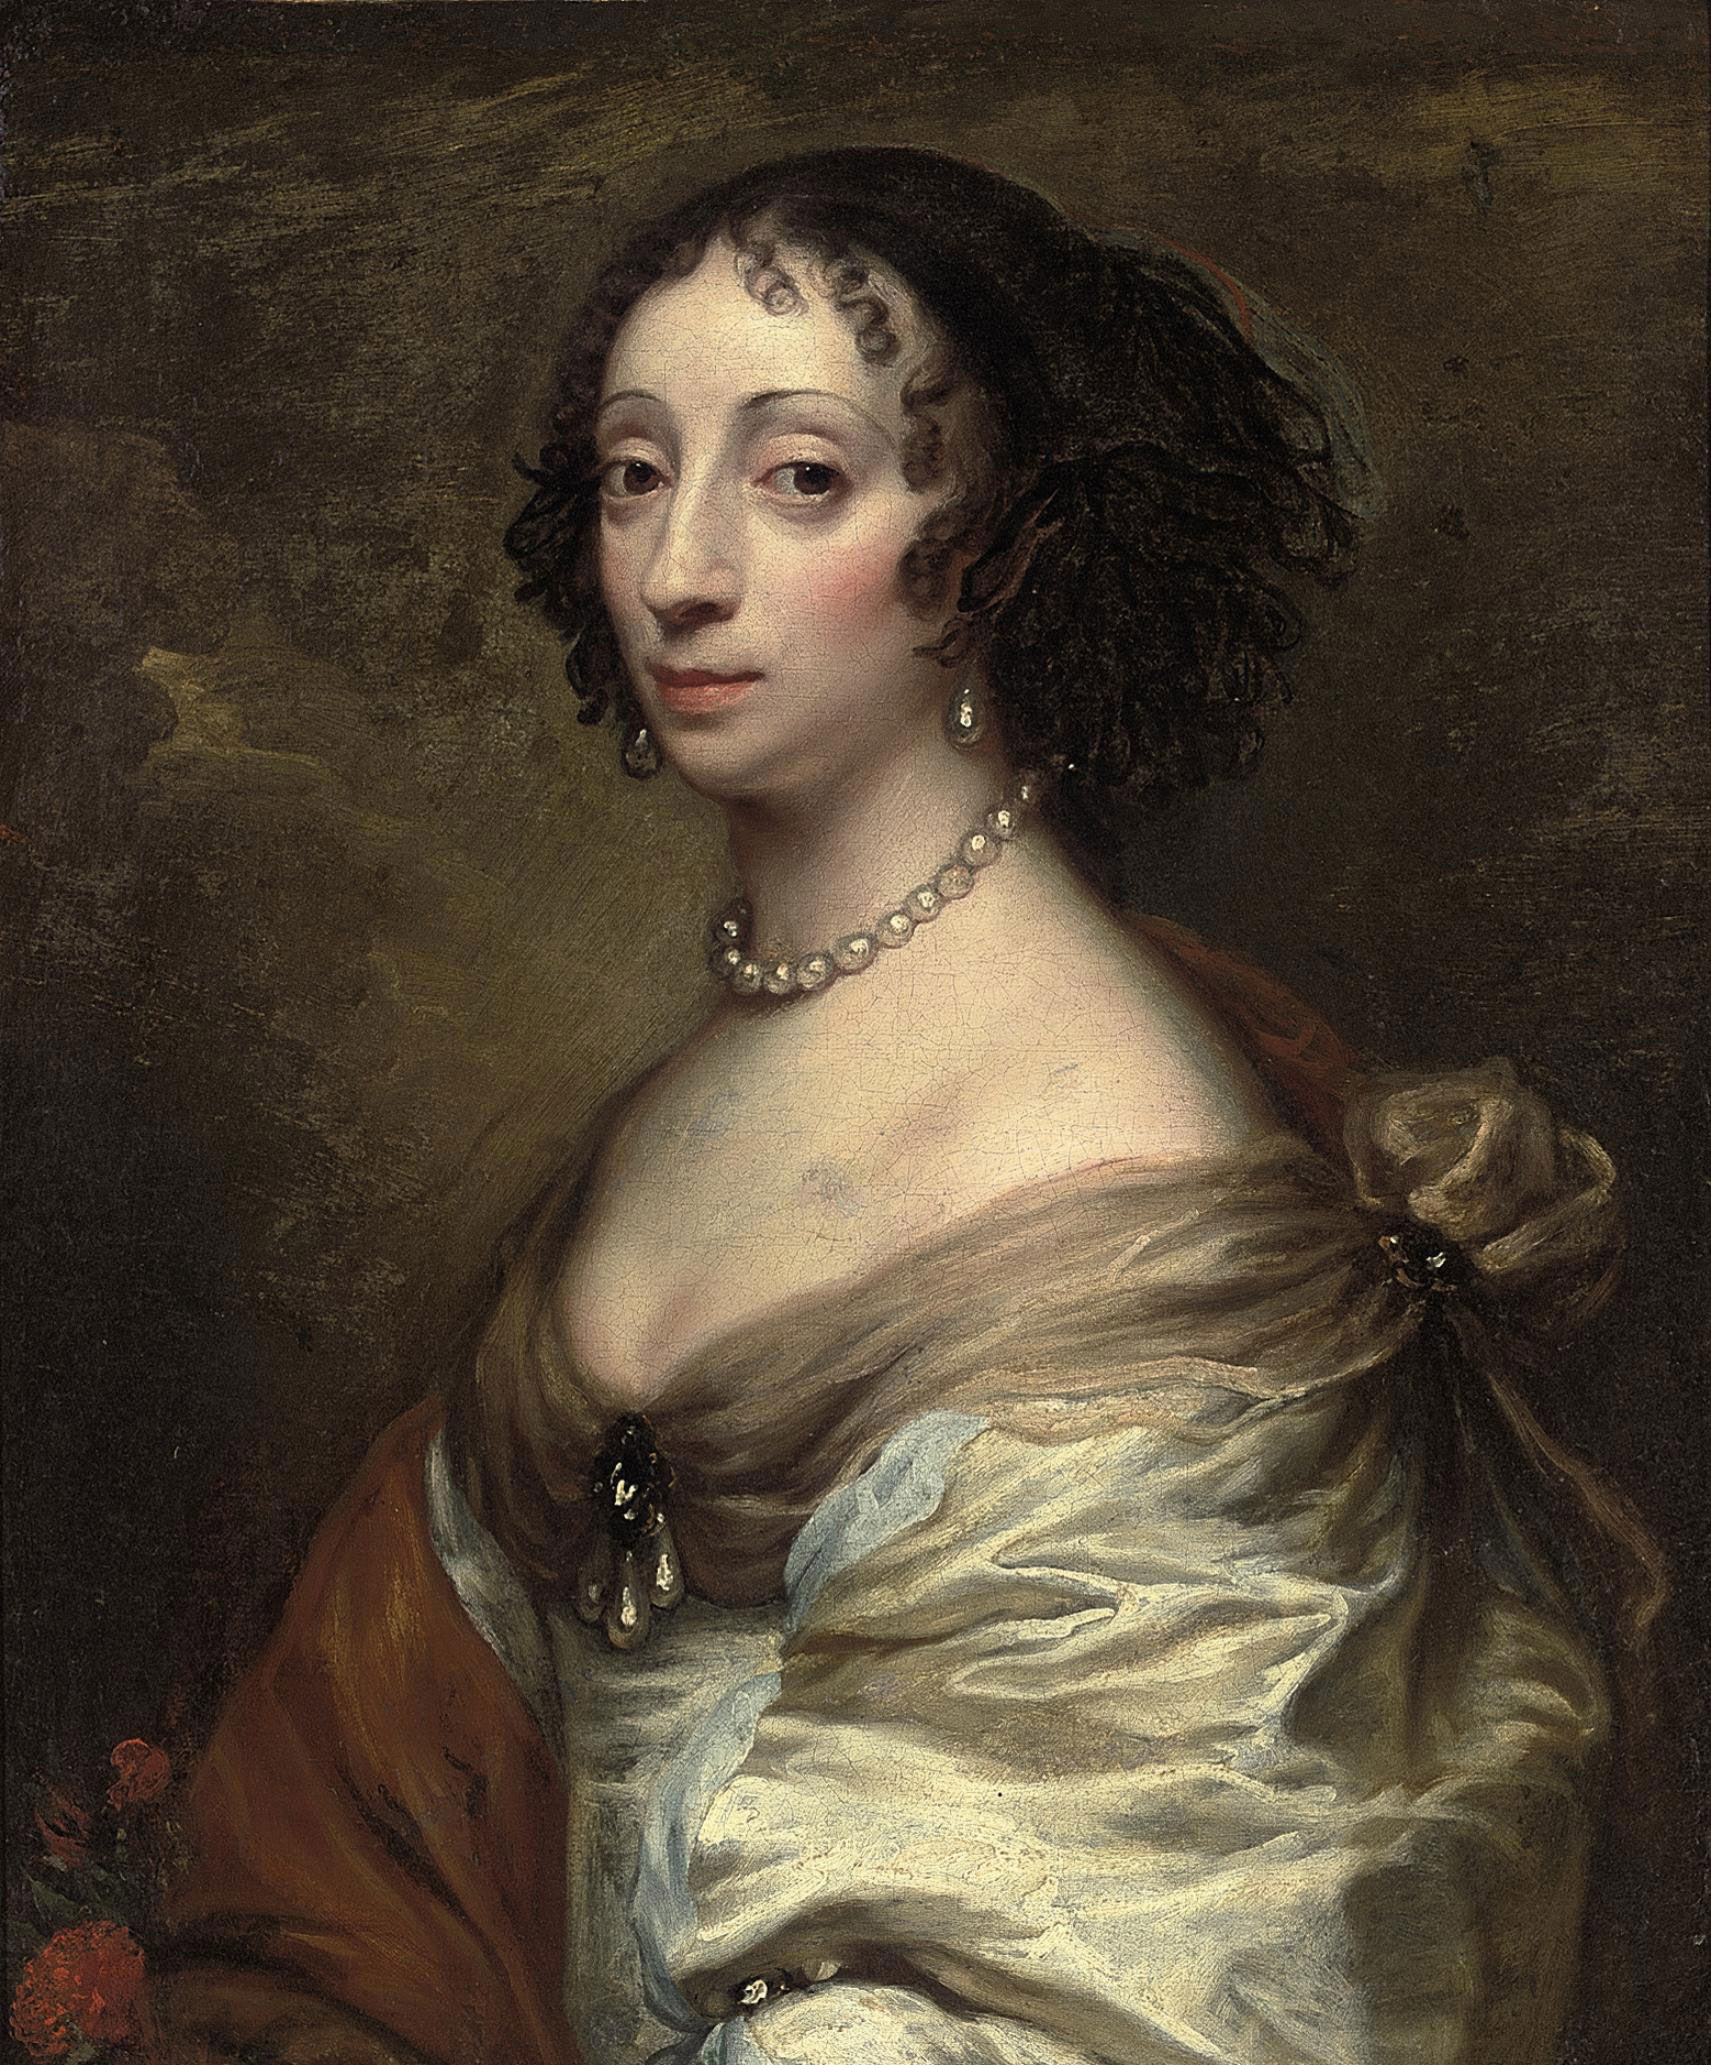 Portrait of a lady, bust-length, in a white satin dress, with a broach and pearls, a red flower in the foreground